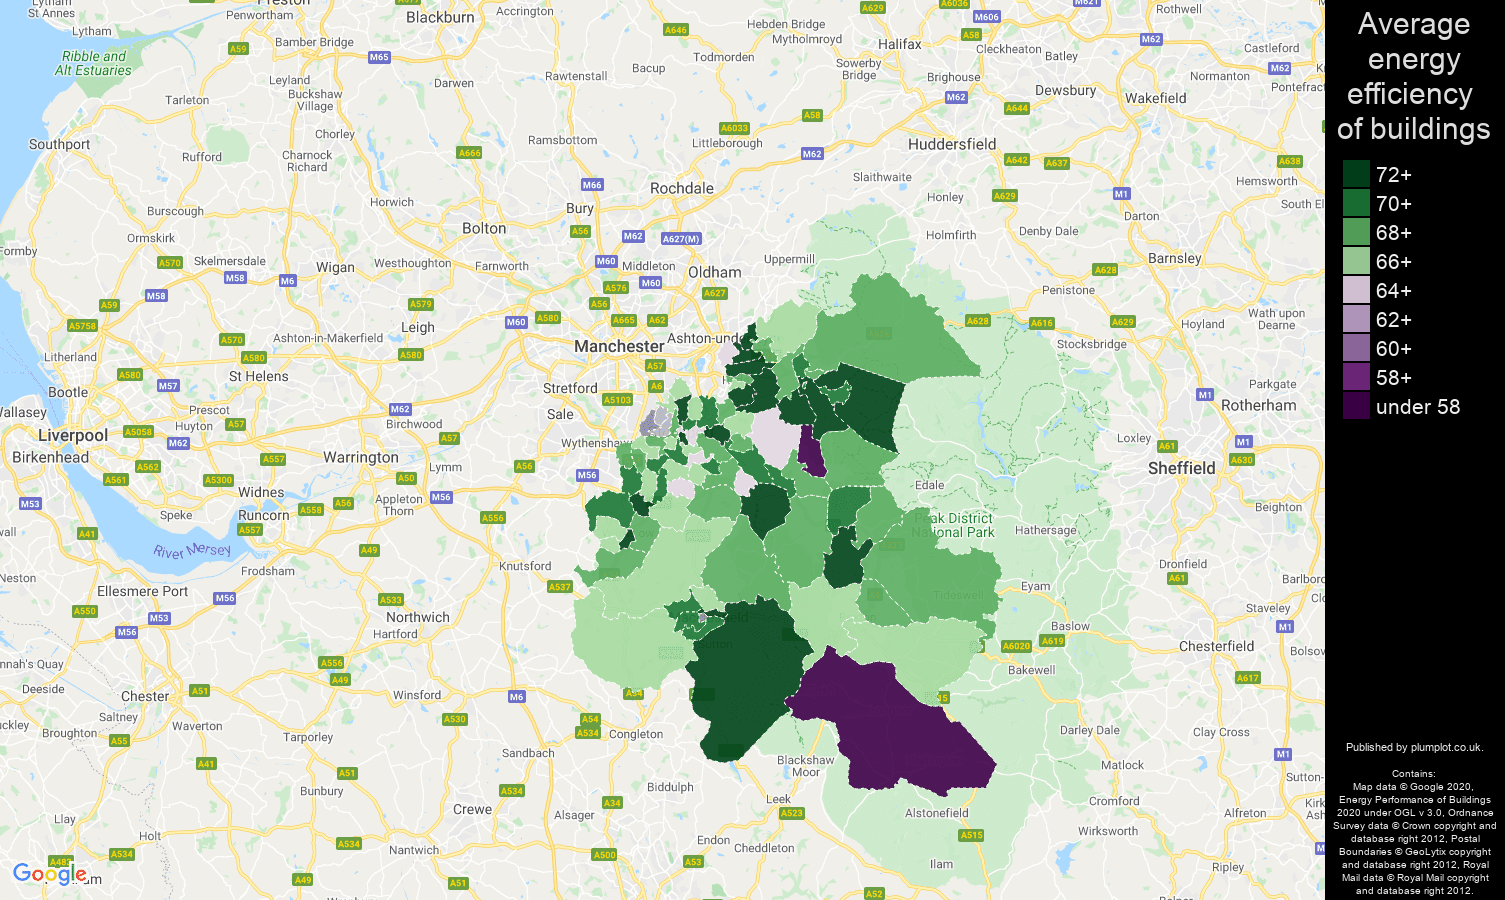 Stockport map of energy efficiency of flats